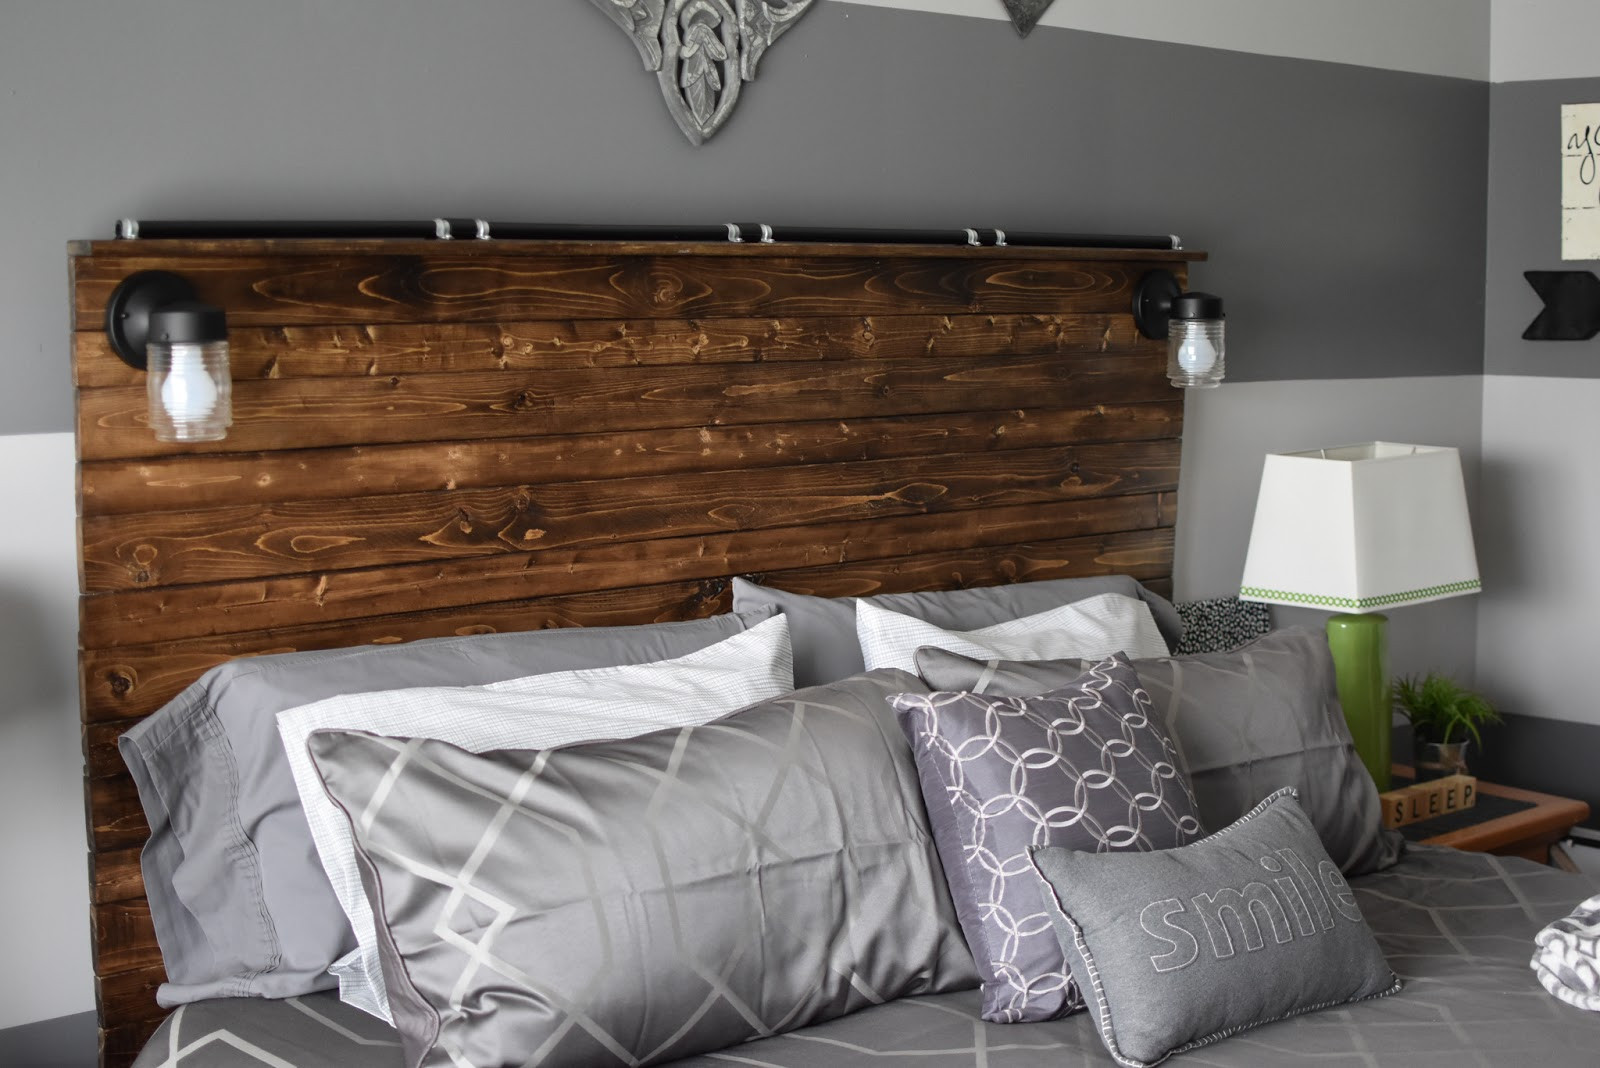 DIY Wood Plank Headboard  Paper Paint and Pine DIY Wooden Plank Headboard